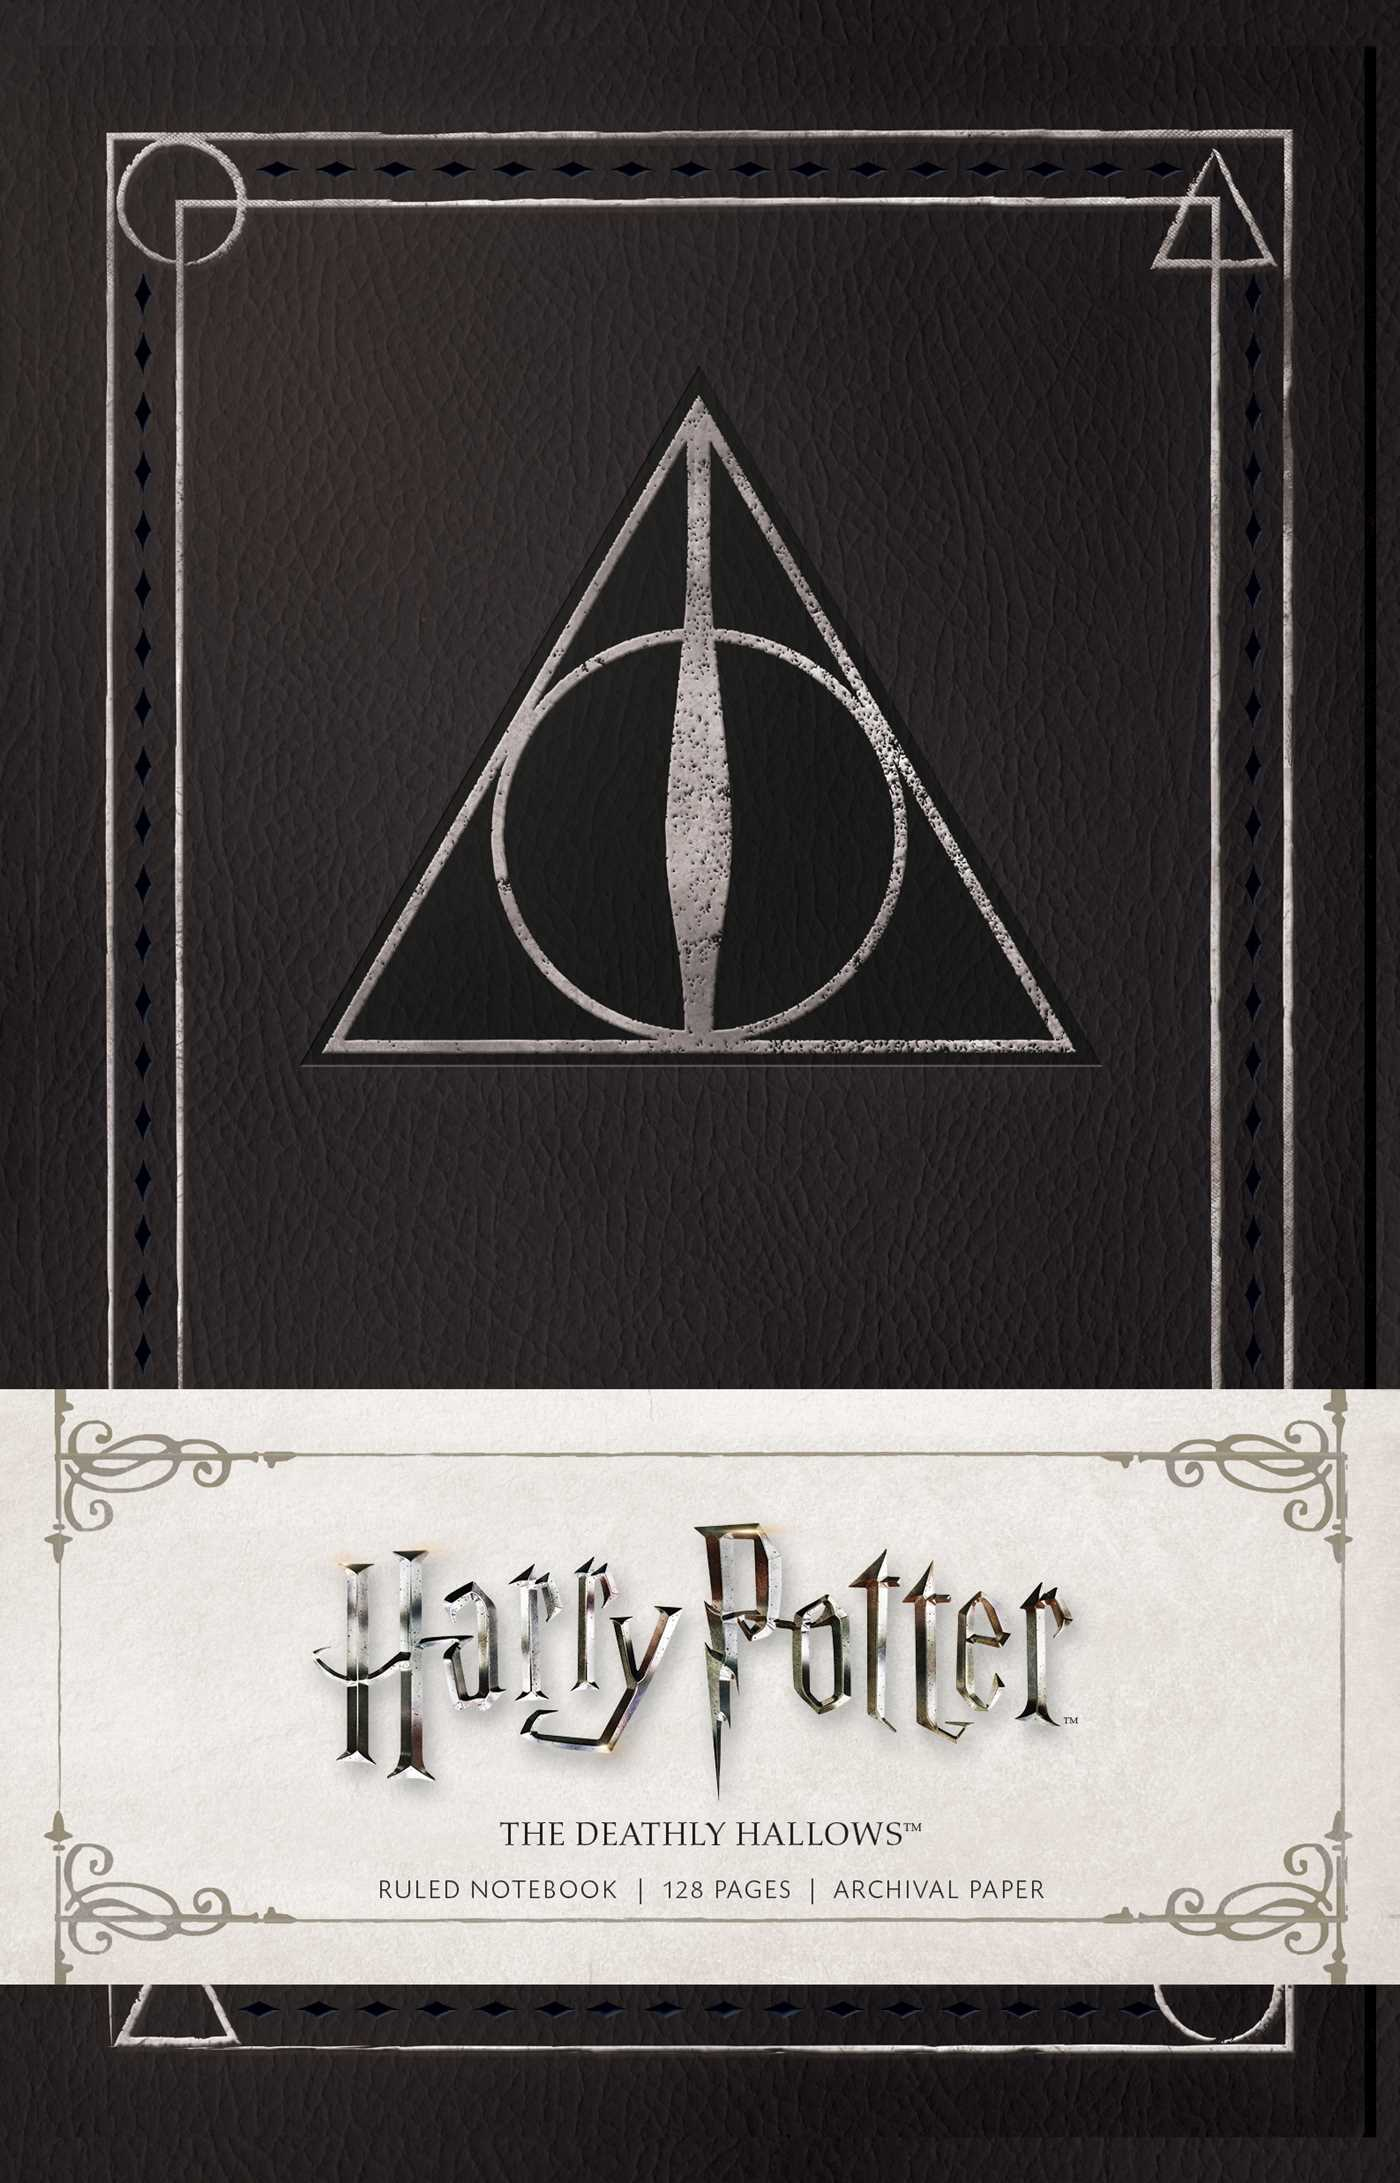 Harry Potter The Deathly Hallows Ruled Notebook Book By Insight